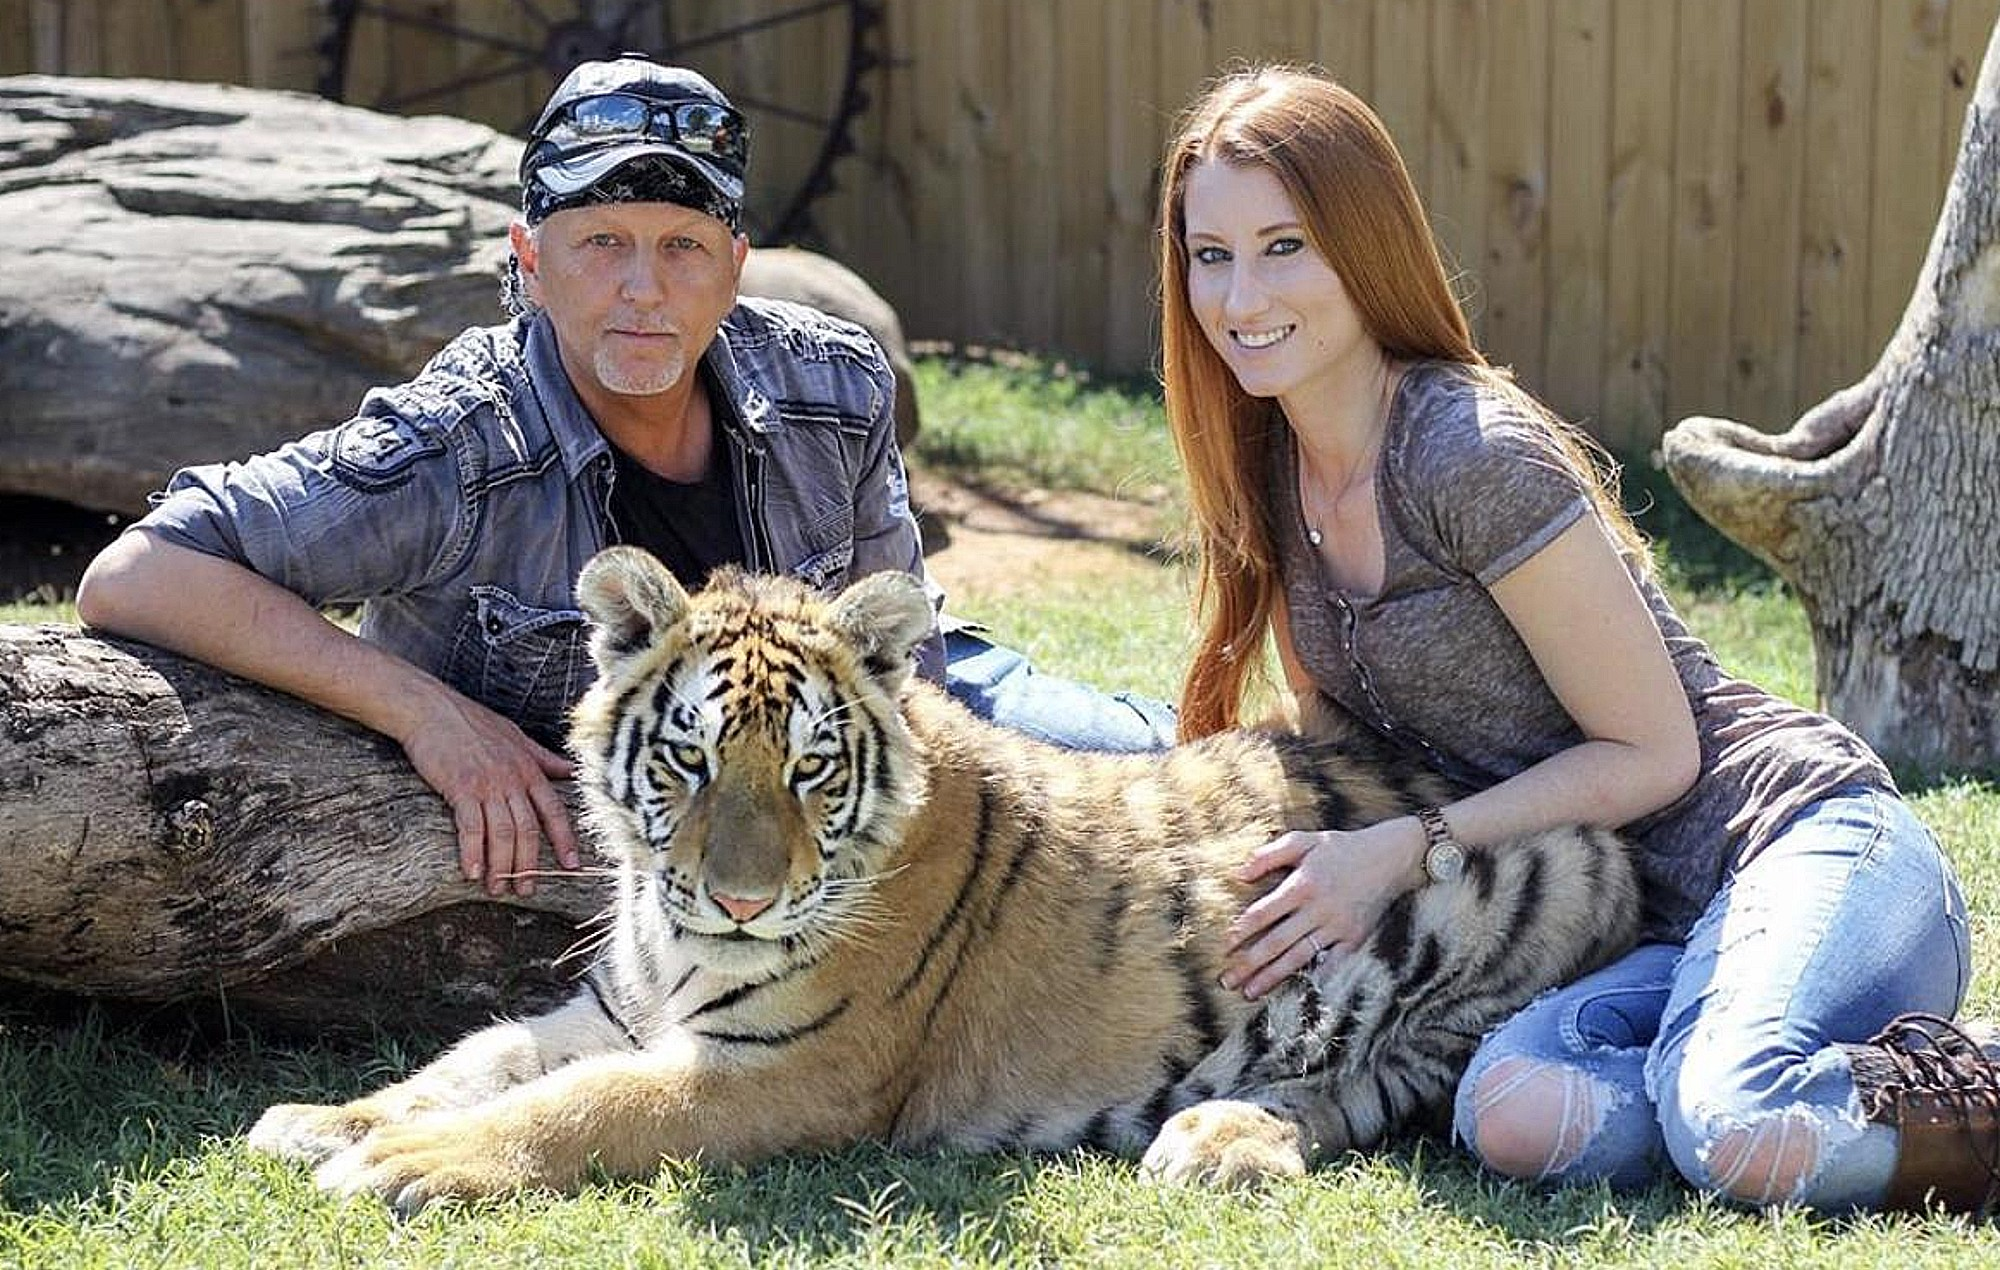 Tiger King Jeff Lowe and Lauren Dropla